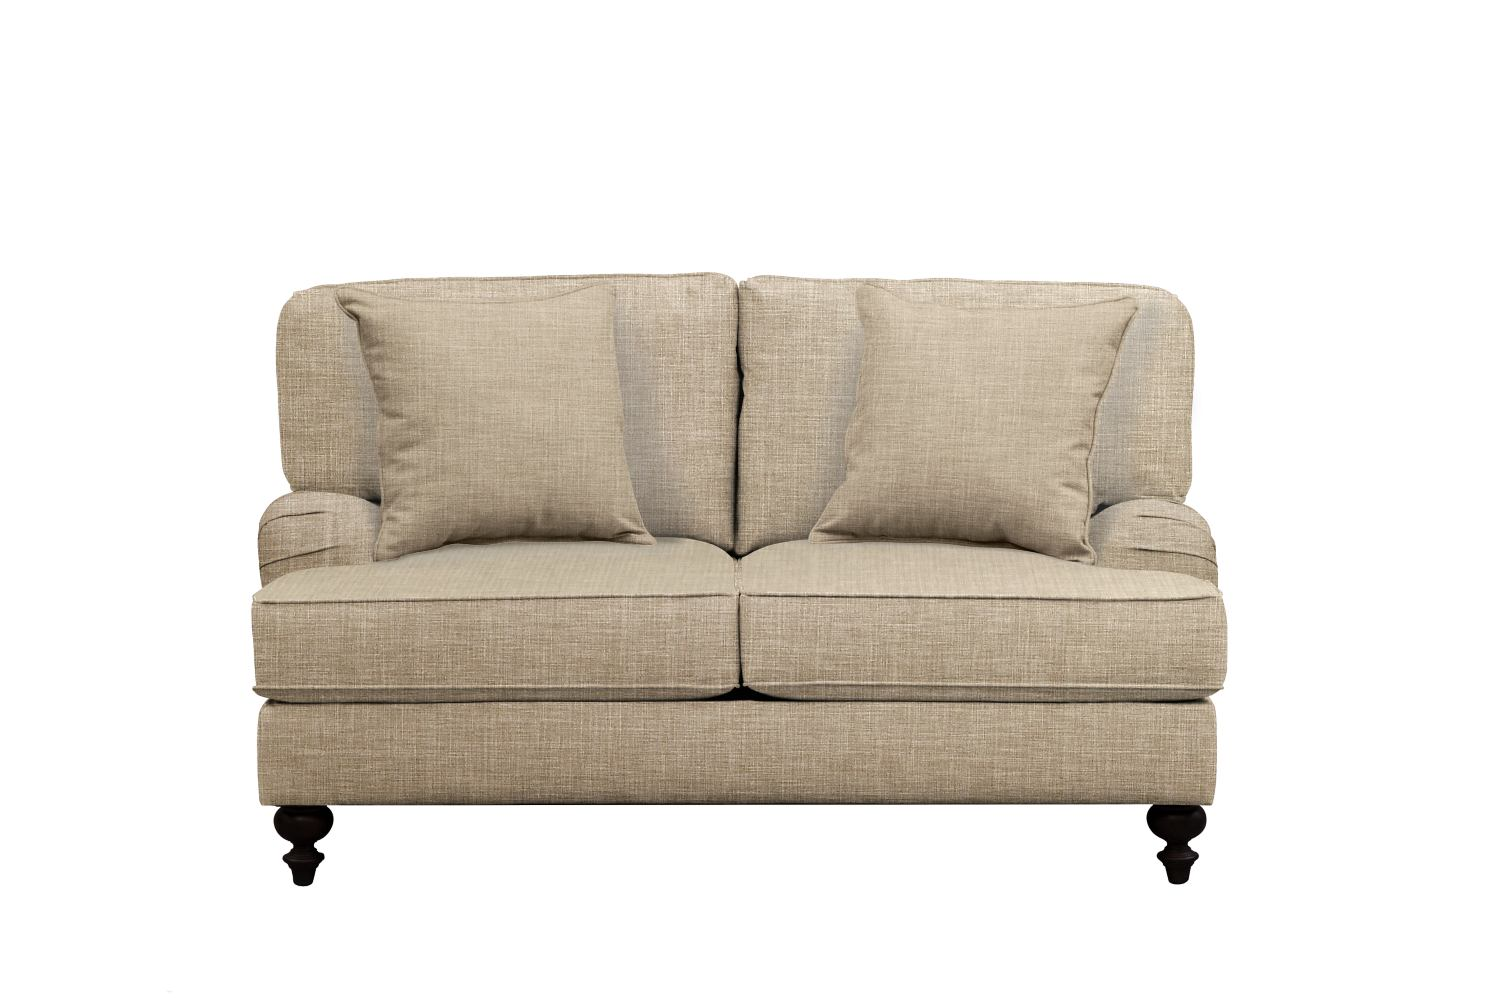 "Living Room Furniture - Avery English Arm Sofa 62"" Milford II Toast w/ Milford II Toast  Pillow"